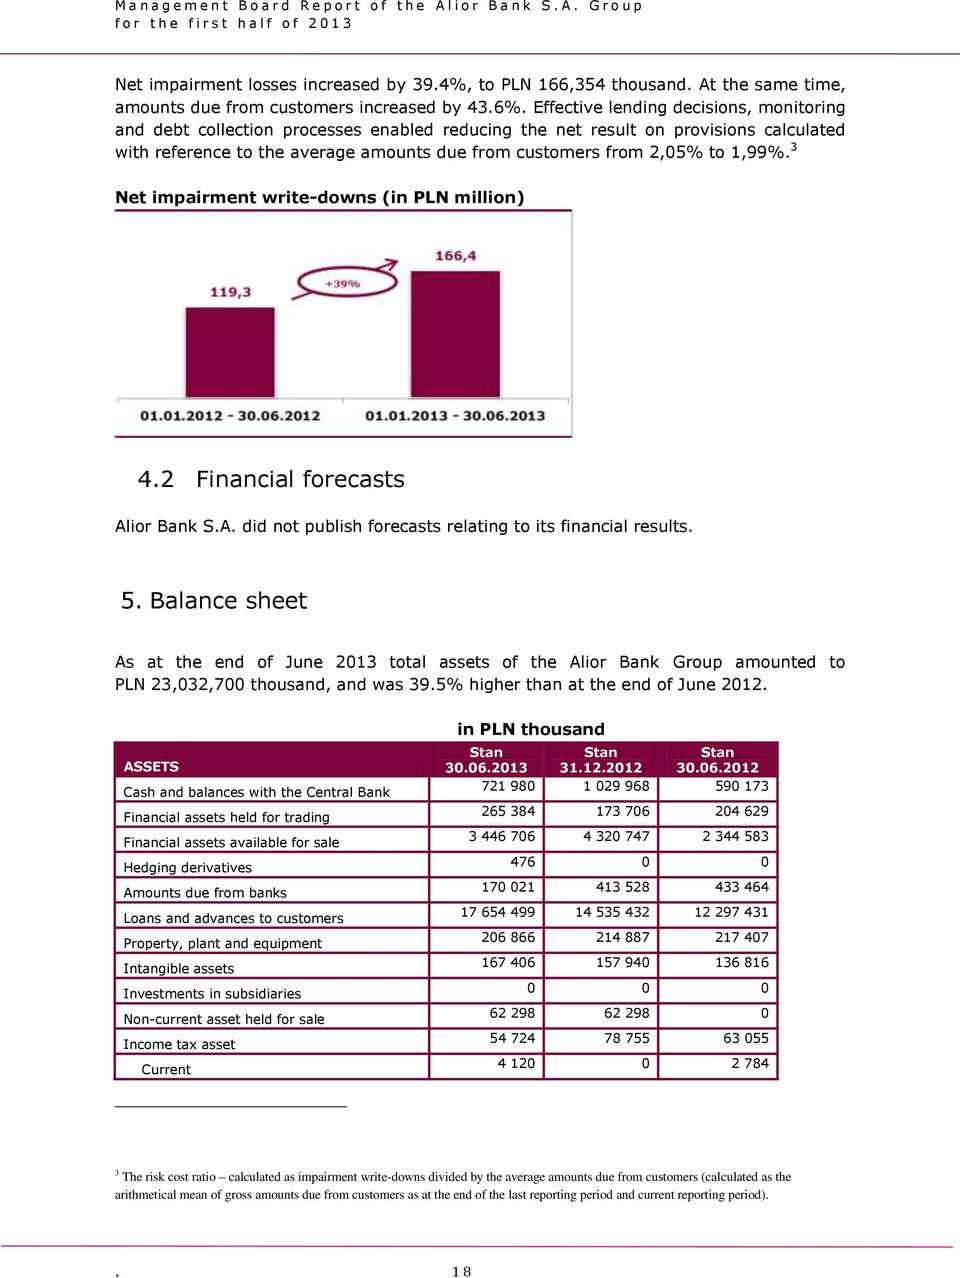 1,99%. 3 Net impairment write-downs (in PLN million) 4.2 Financial forecasts Alior Bank S.A. did not publish forecasts relating to its financial results. 5.